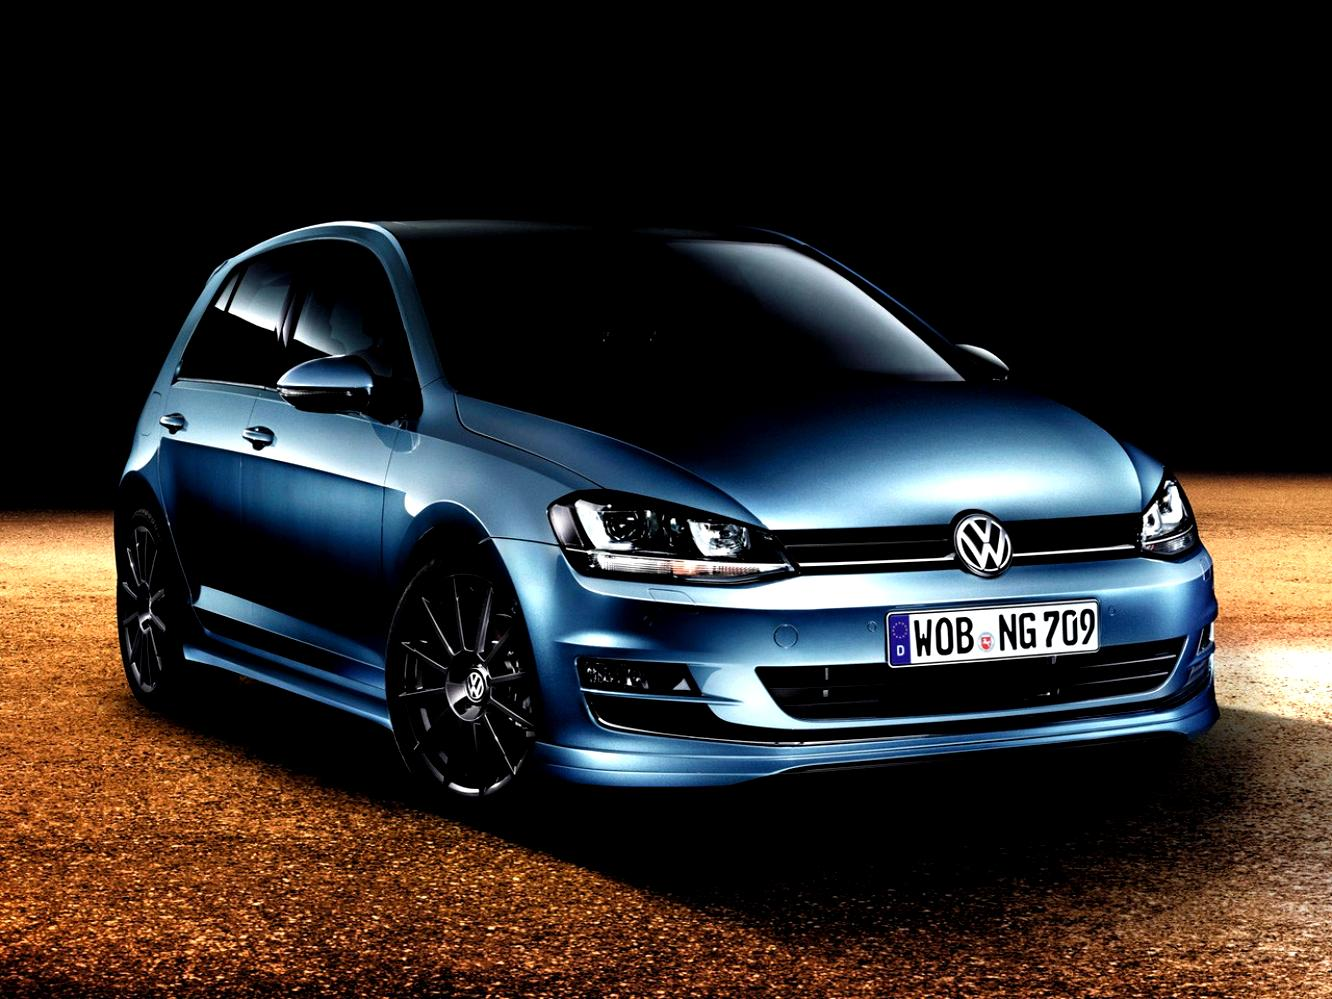 Volkswagen Golf VII 5 Doors 2012 #19